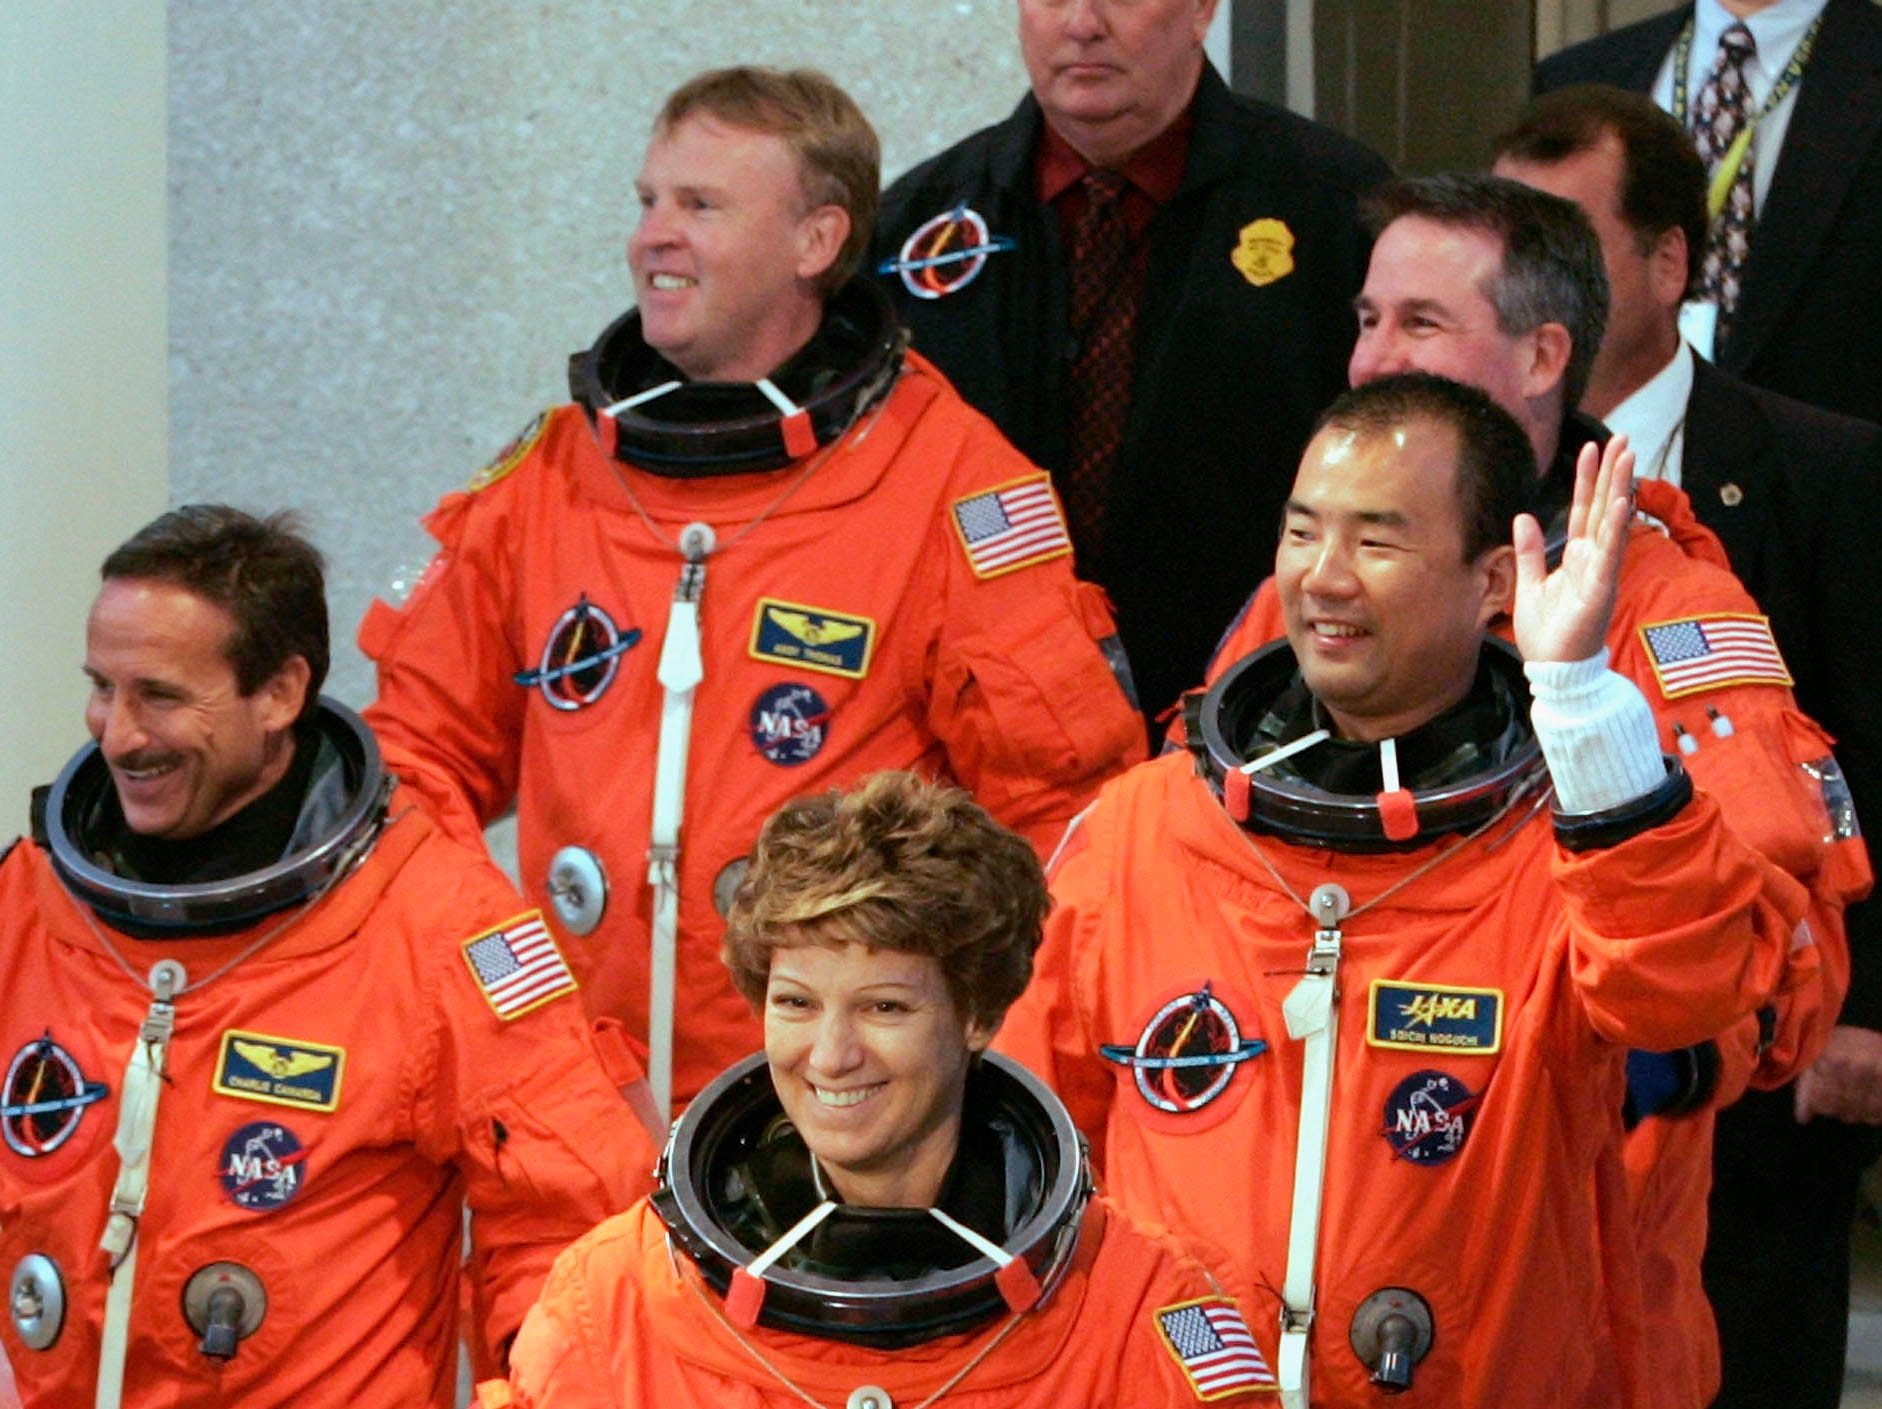 Space Shuttle Discovery astronauts Charles Camarda, Andrew Thomas, commander Eileen Collins, Soichi Noguchi, of the Japanese space agency JAXA, and Stephen Robinson, (L to R) wave to NASA workers before being loaded into the astronaut van to be driven to launch complex 39-B.